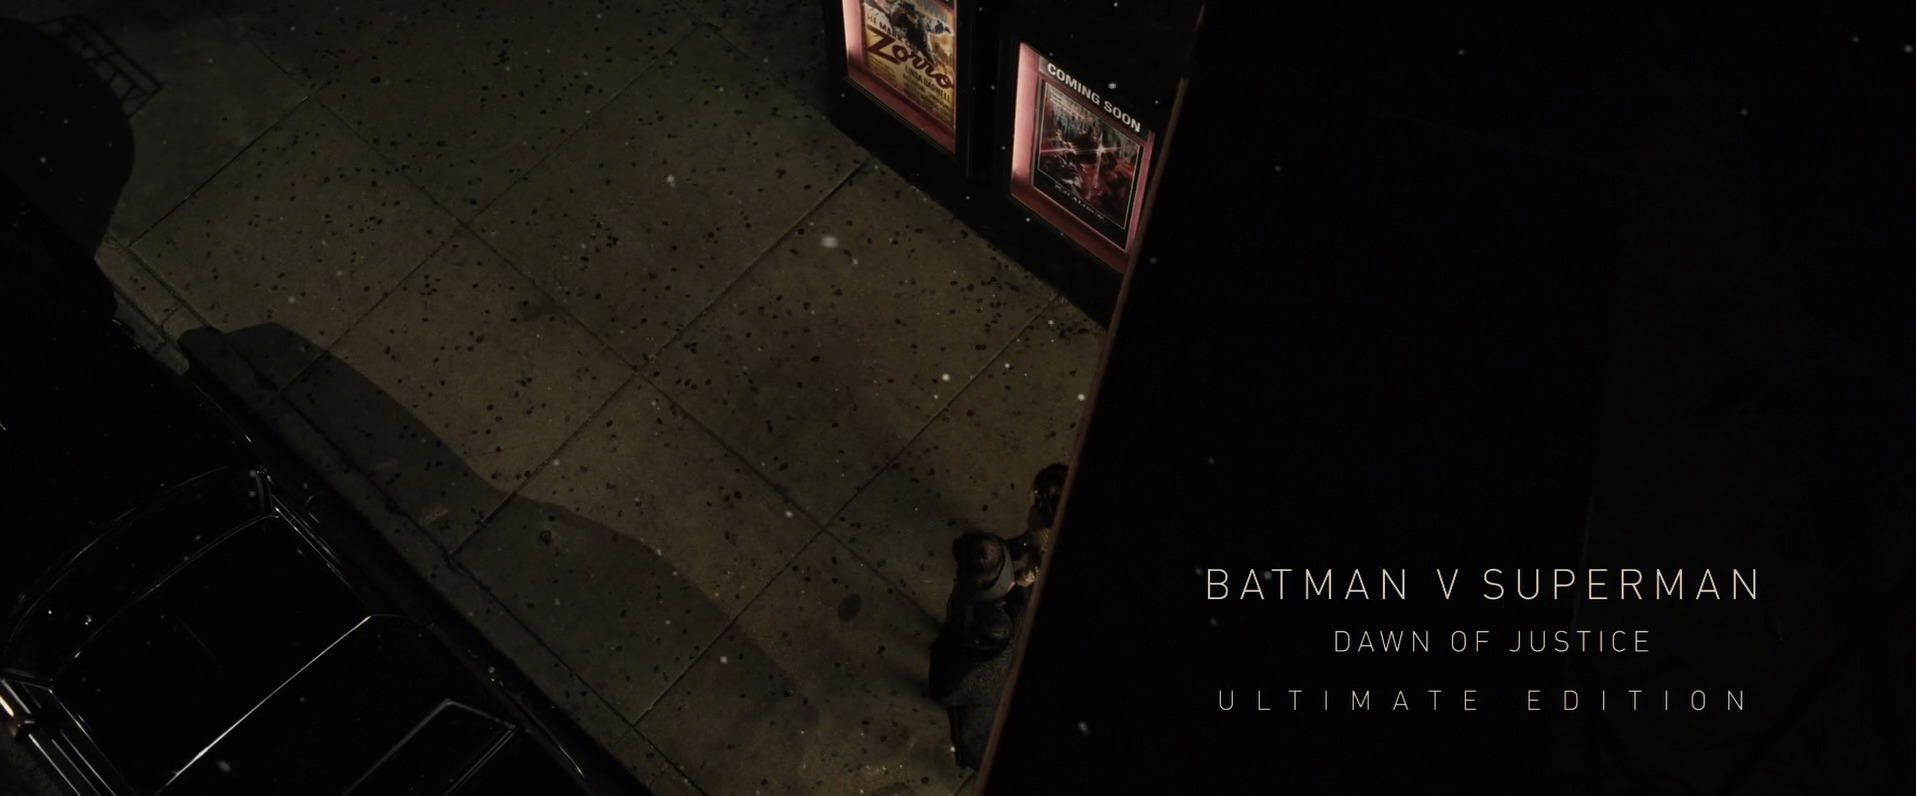 dawn of justice download mp4